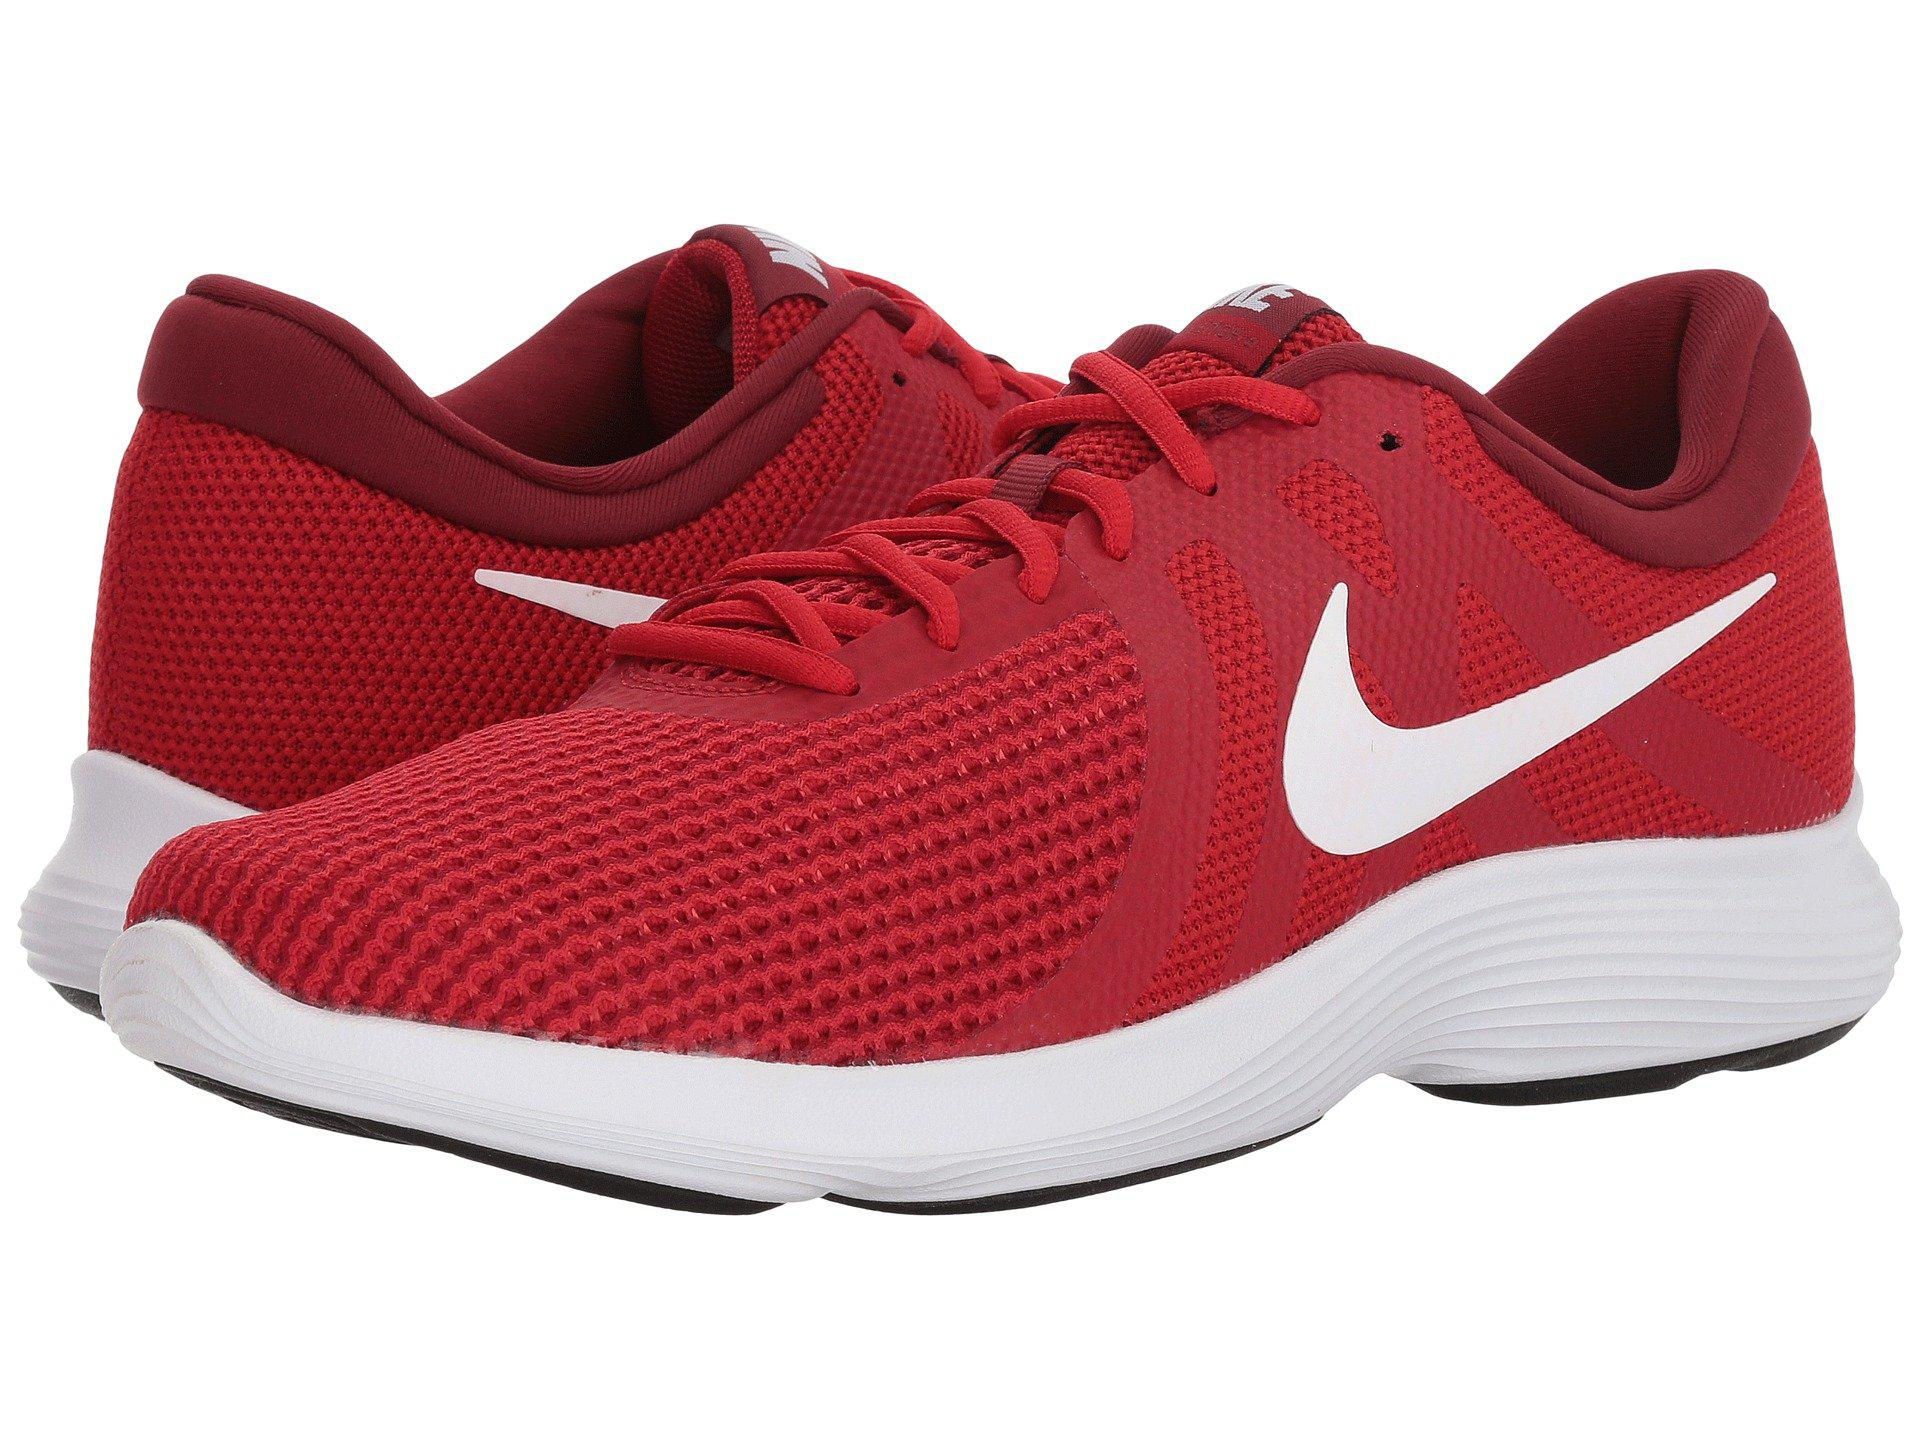 c5d79aaa625e0 Lyst - Nike Revolution 4 Eu Competition Running Shoes in Red for Men